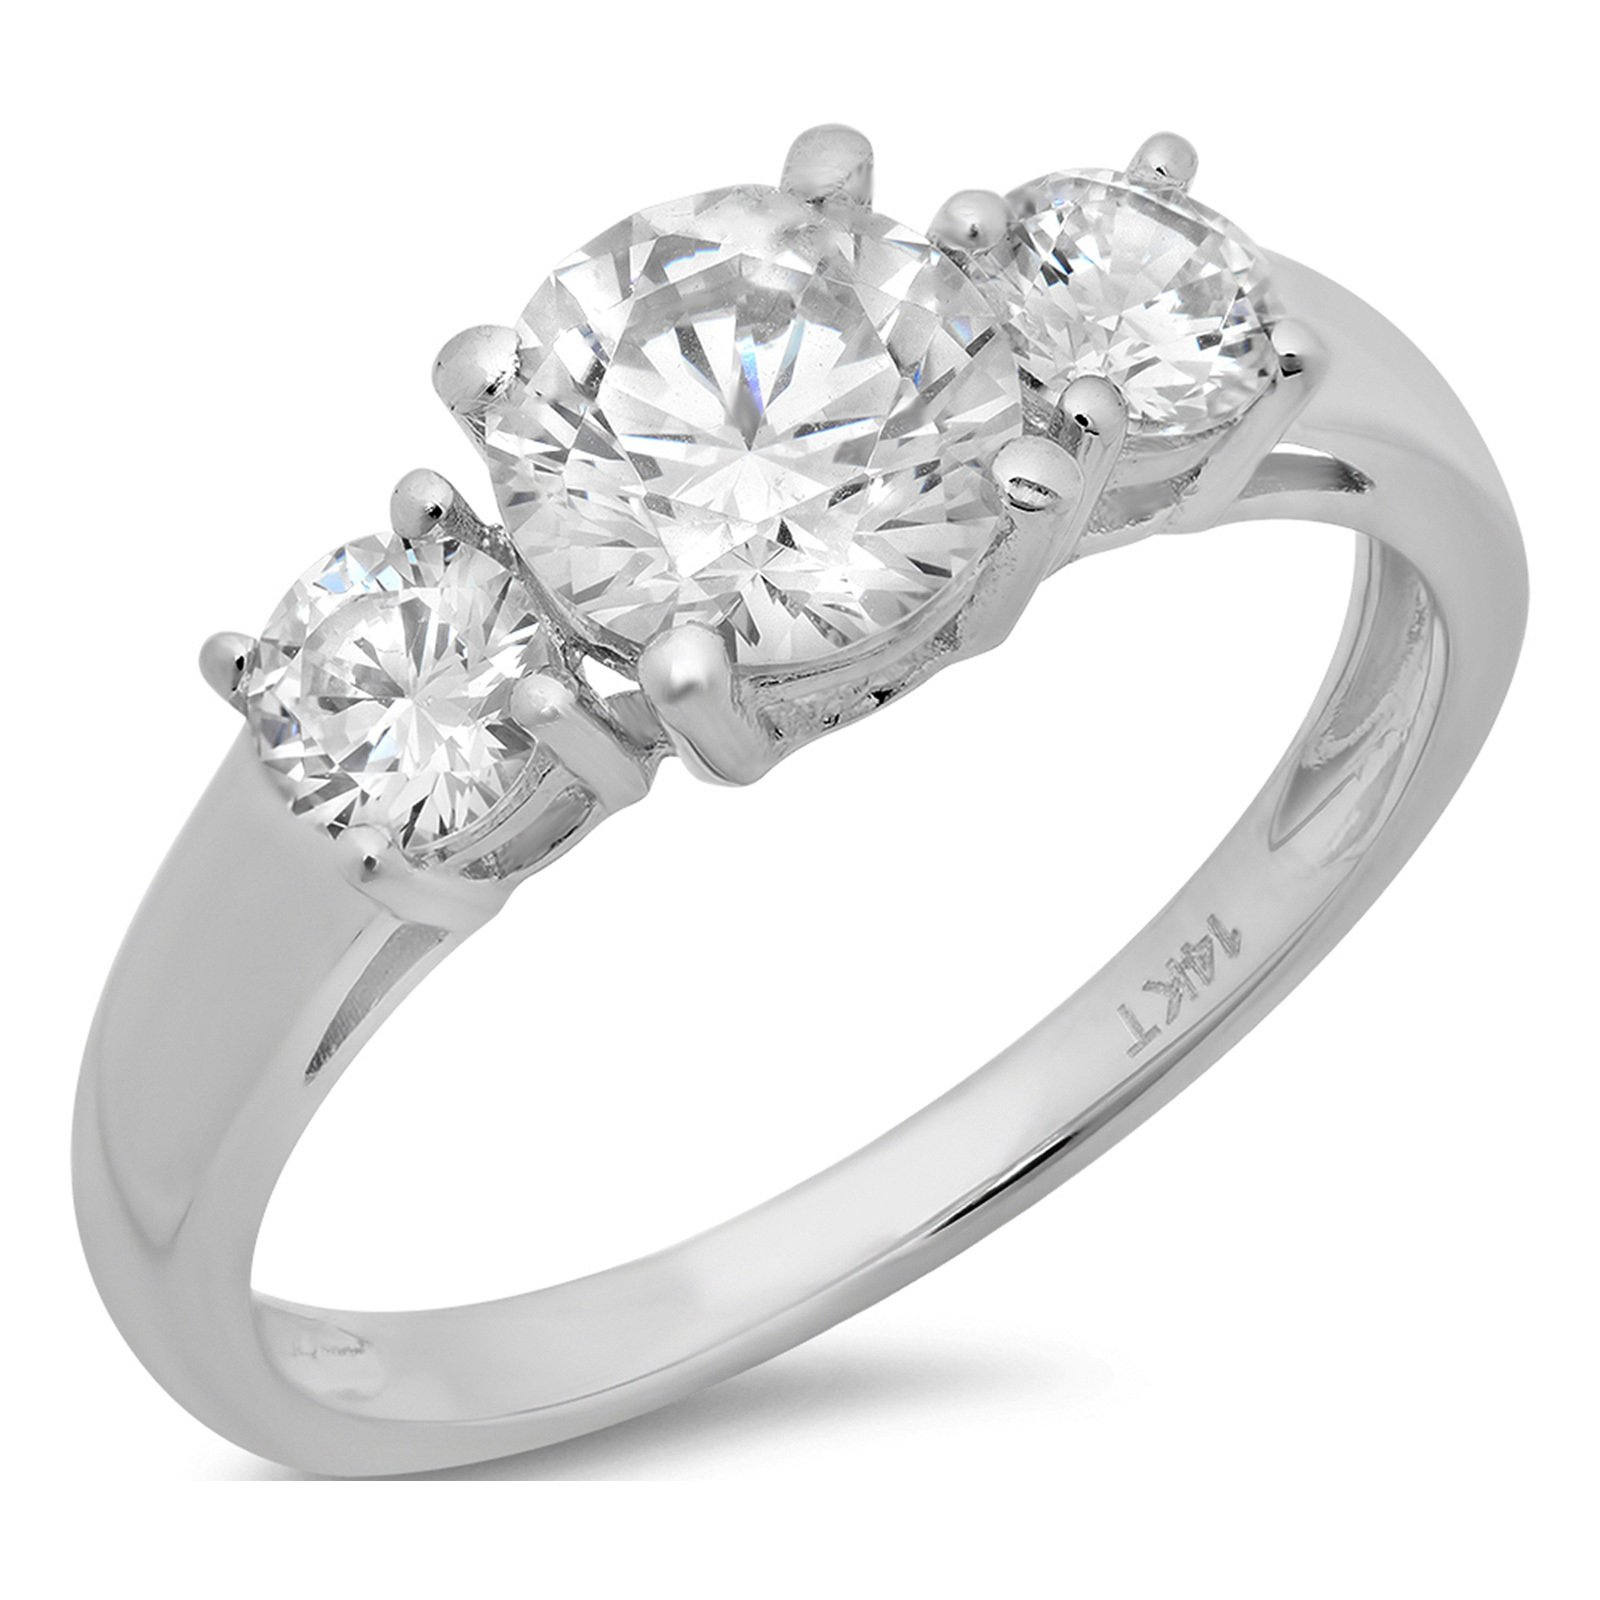 Clara Pucci 1.4 CT Round Cut Solitaire Three Stone Ring 14K White Gold Engagement Wedding Band, Size 6